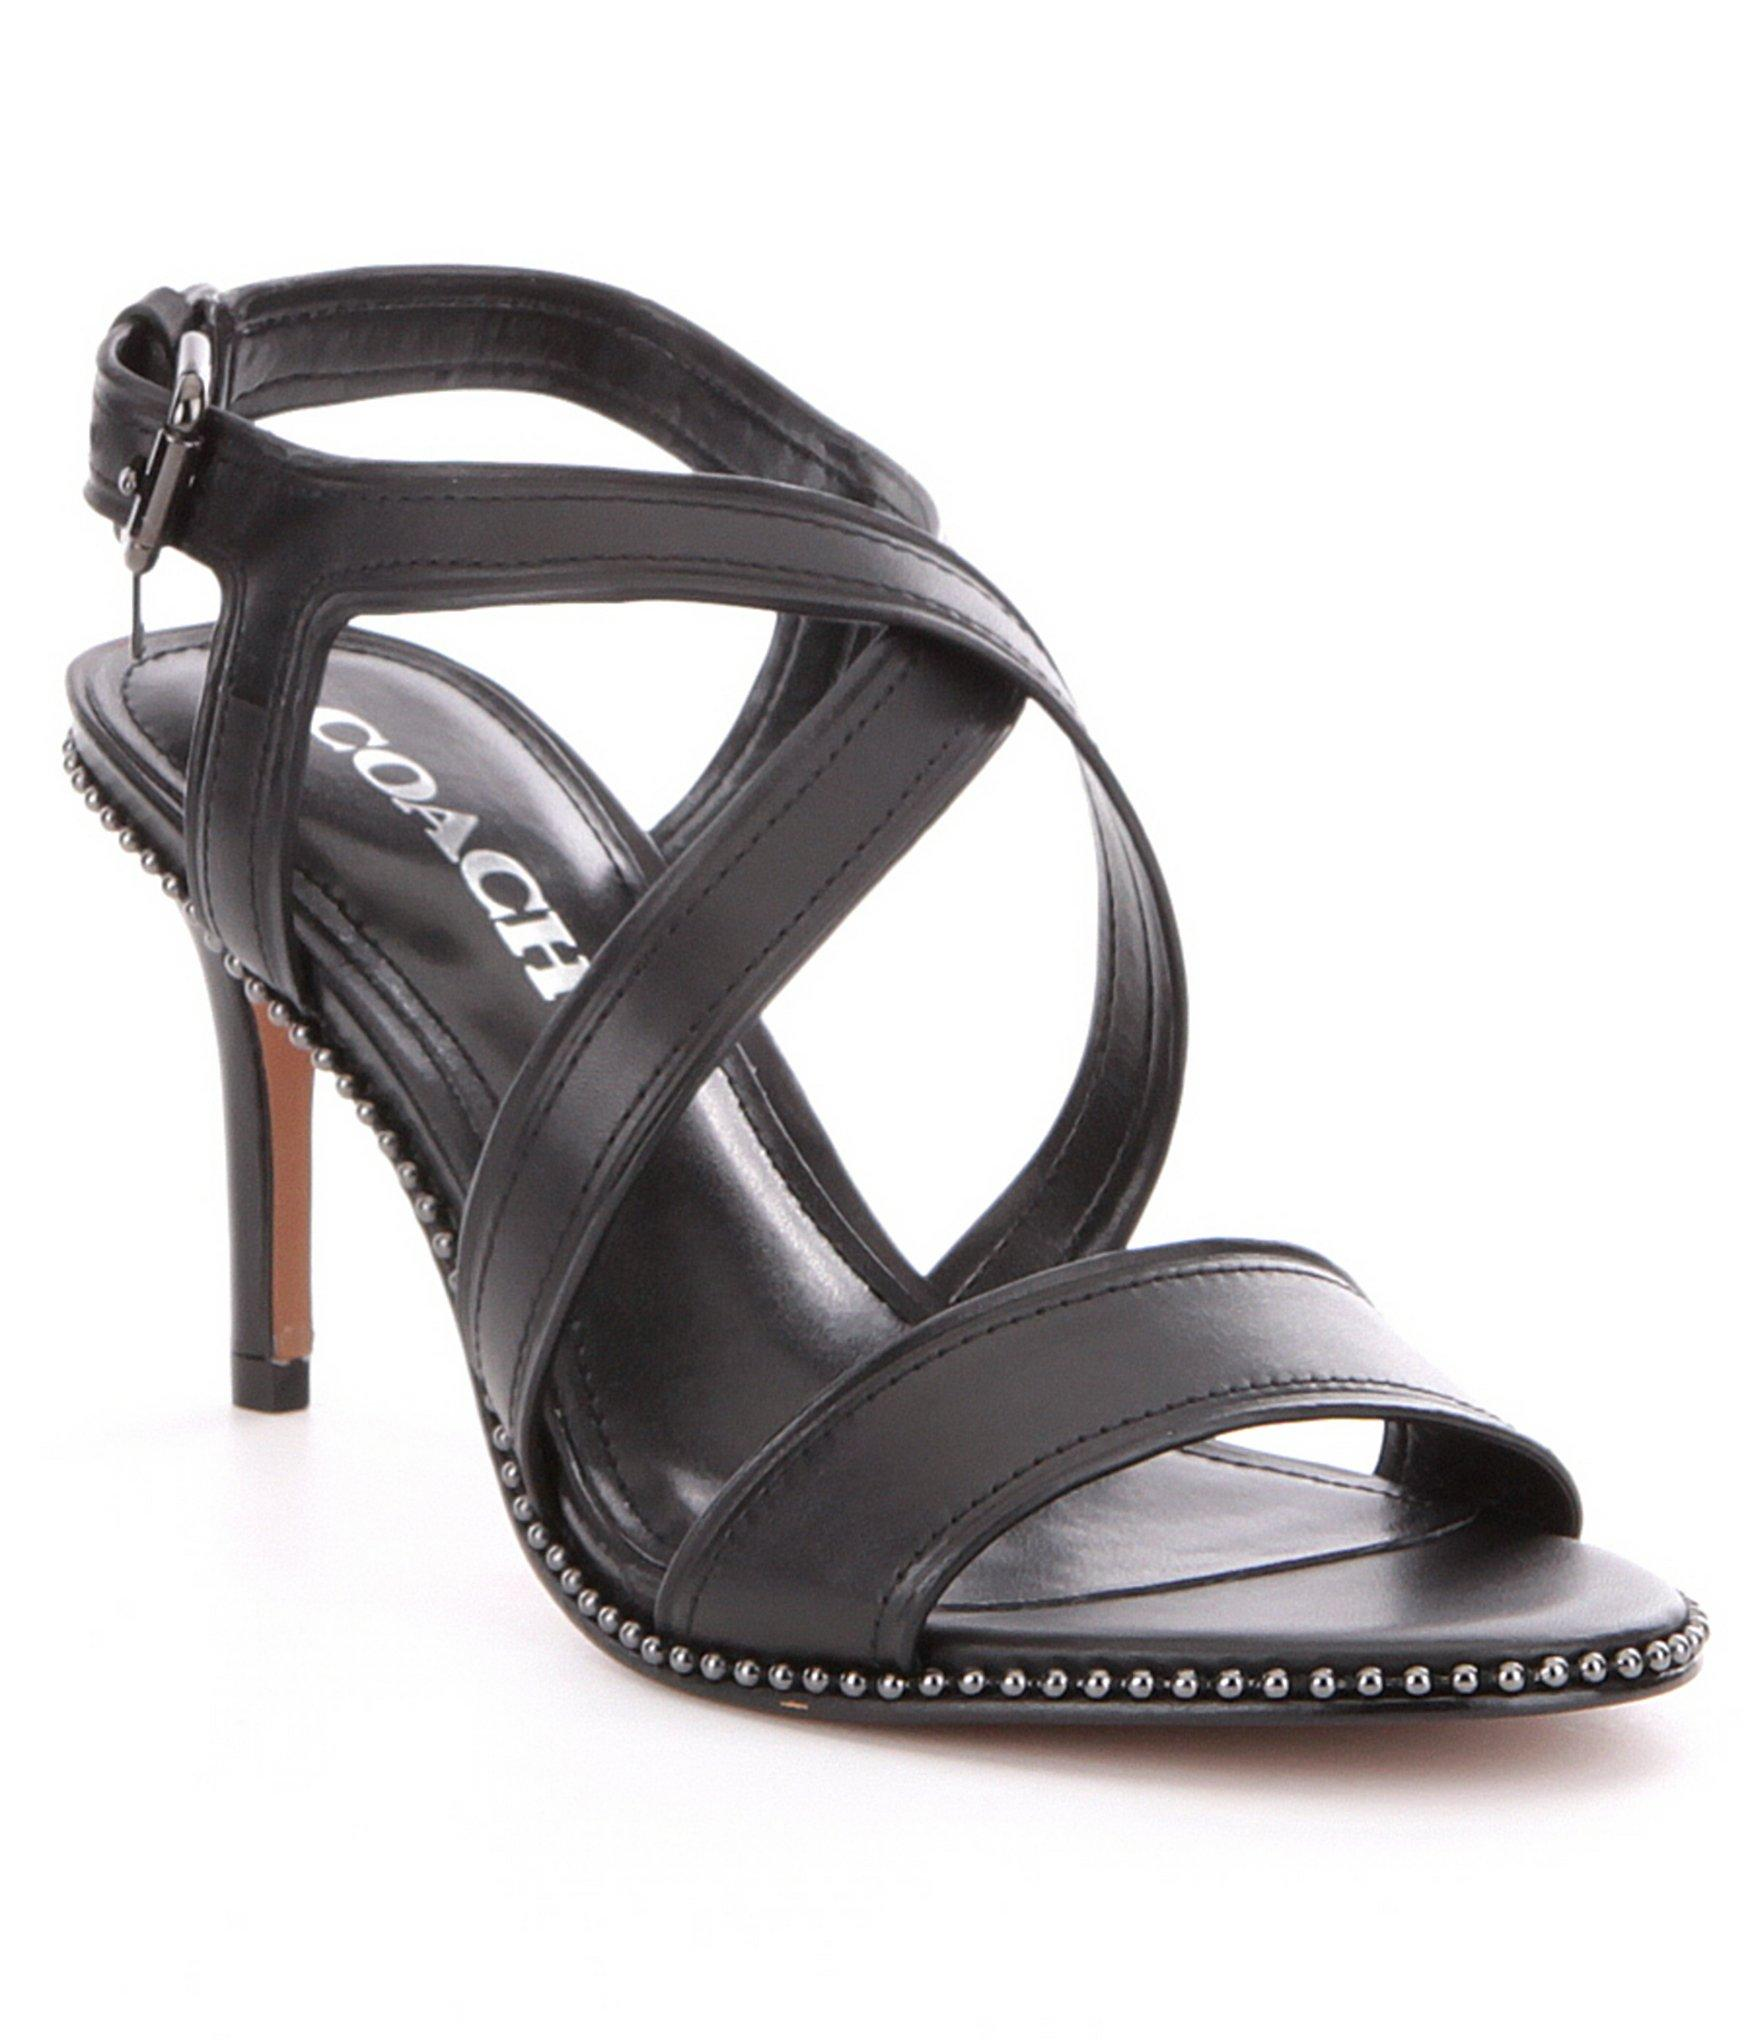 Lyst - Coach Wendi Heel in Black